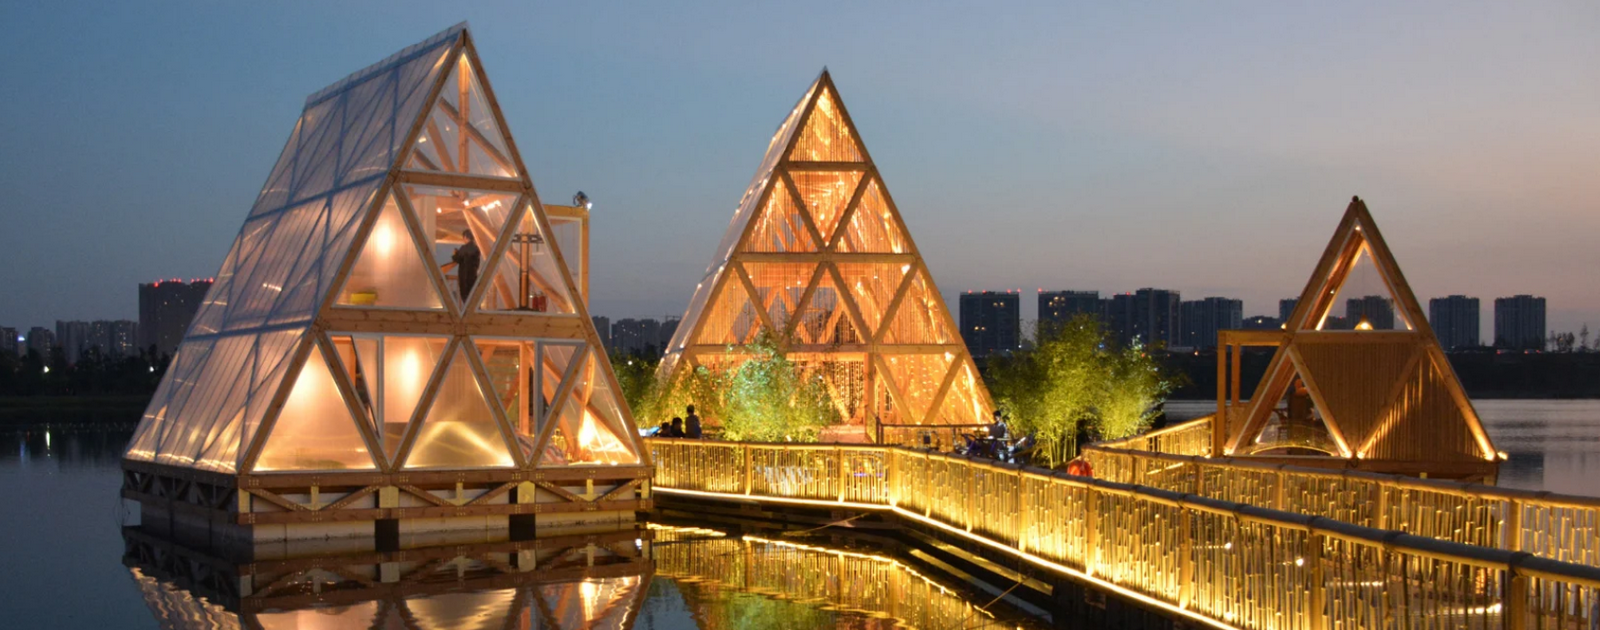 10 Influential Architects from 3rd world countries Sheet8